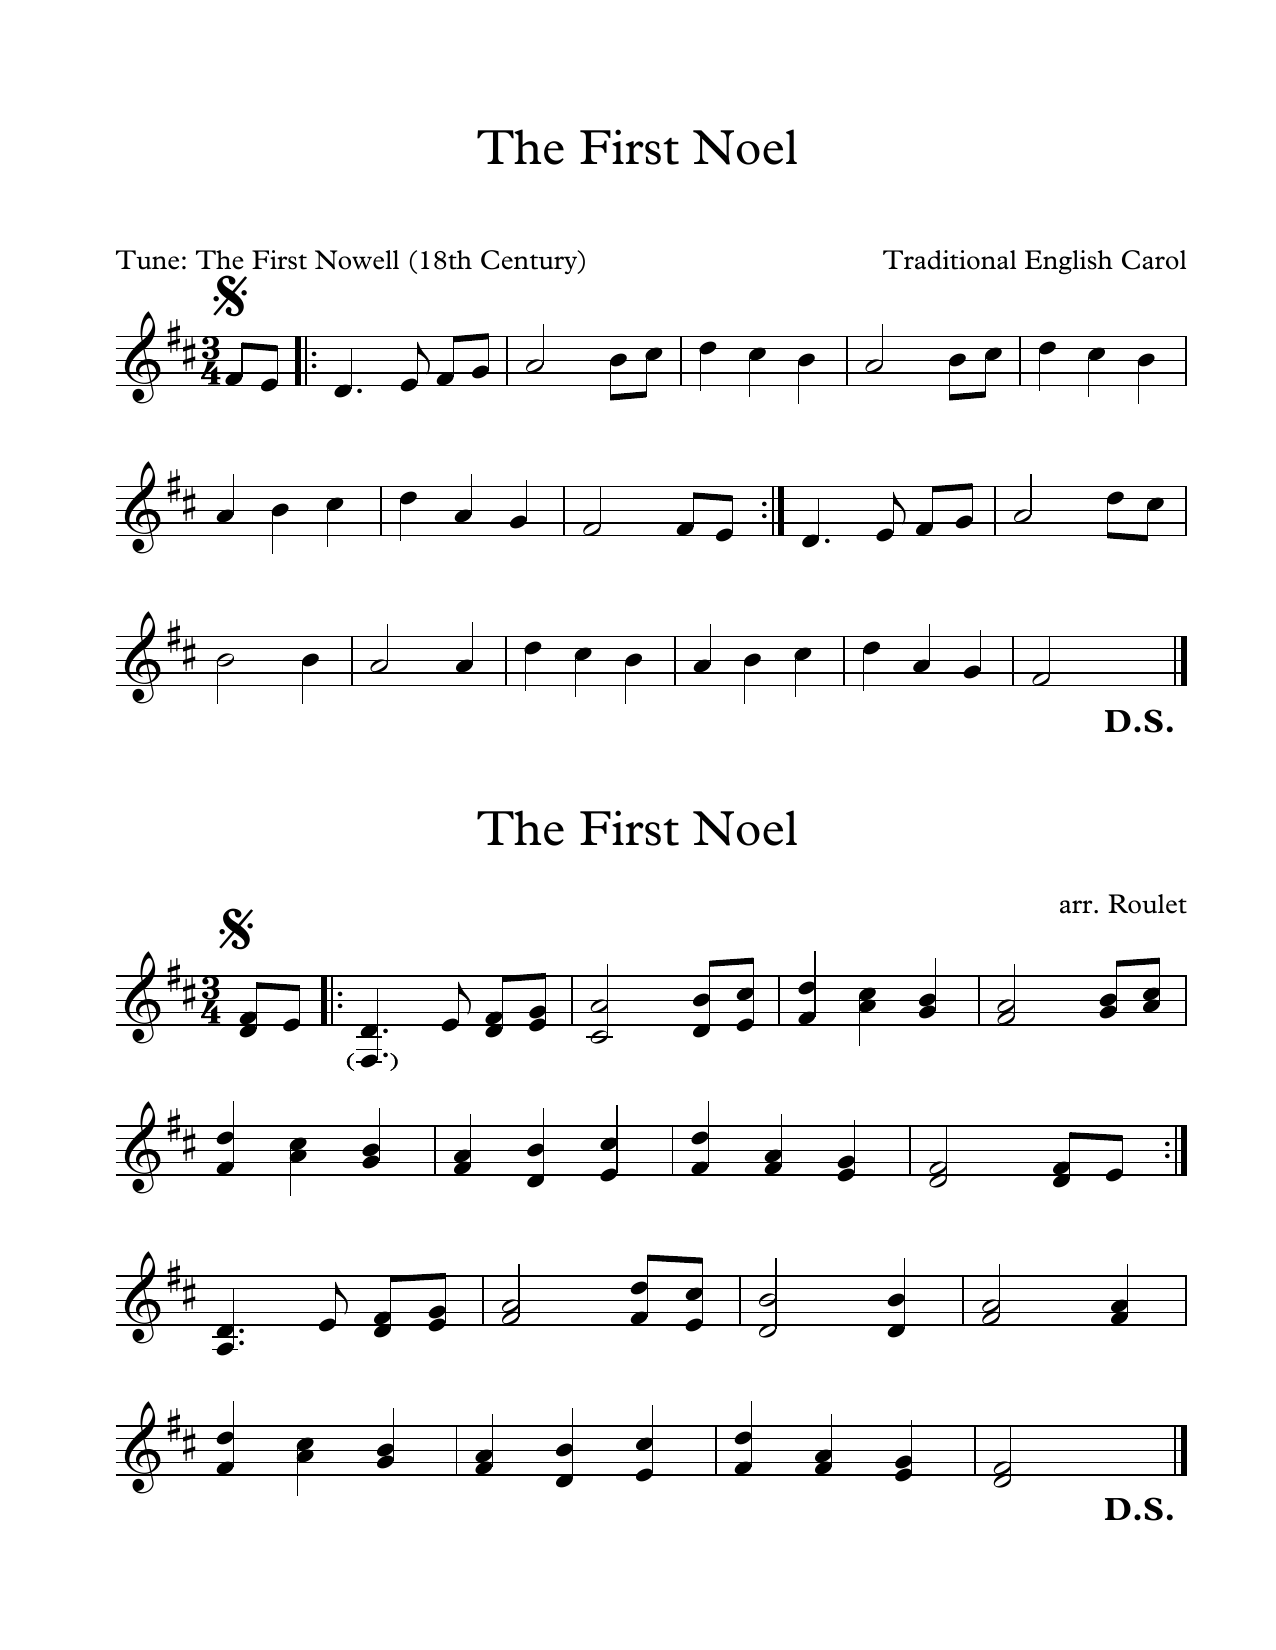 Traditional English Carol First Noel (arr. Patrick Roulet) sheet music notes and chords. Download Printable PDF.